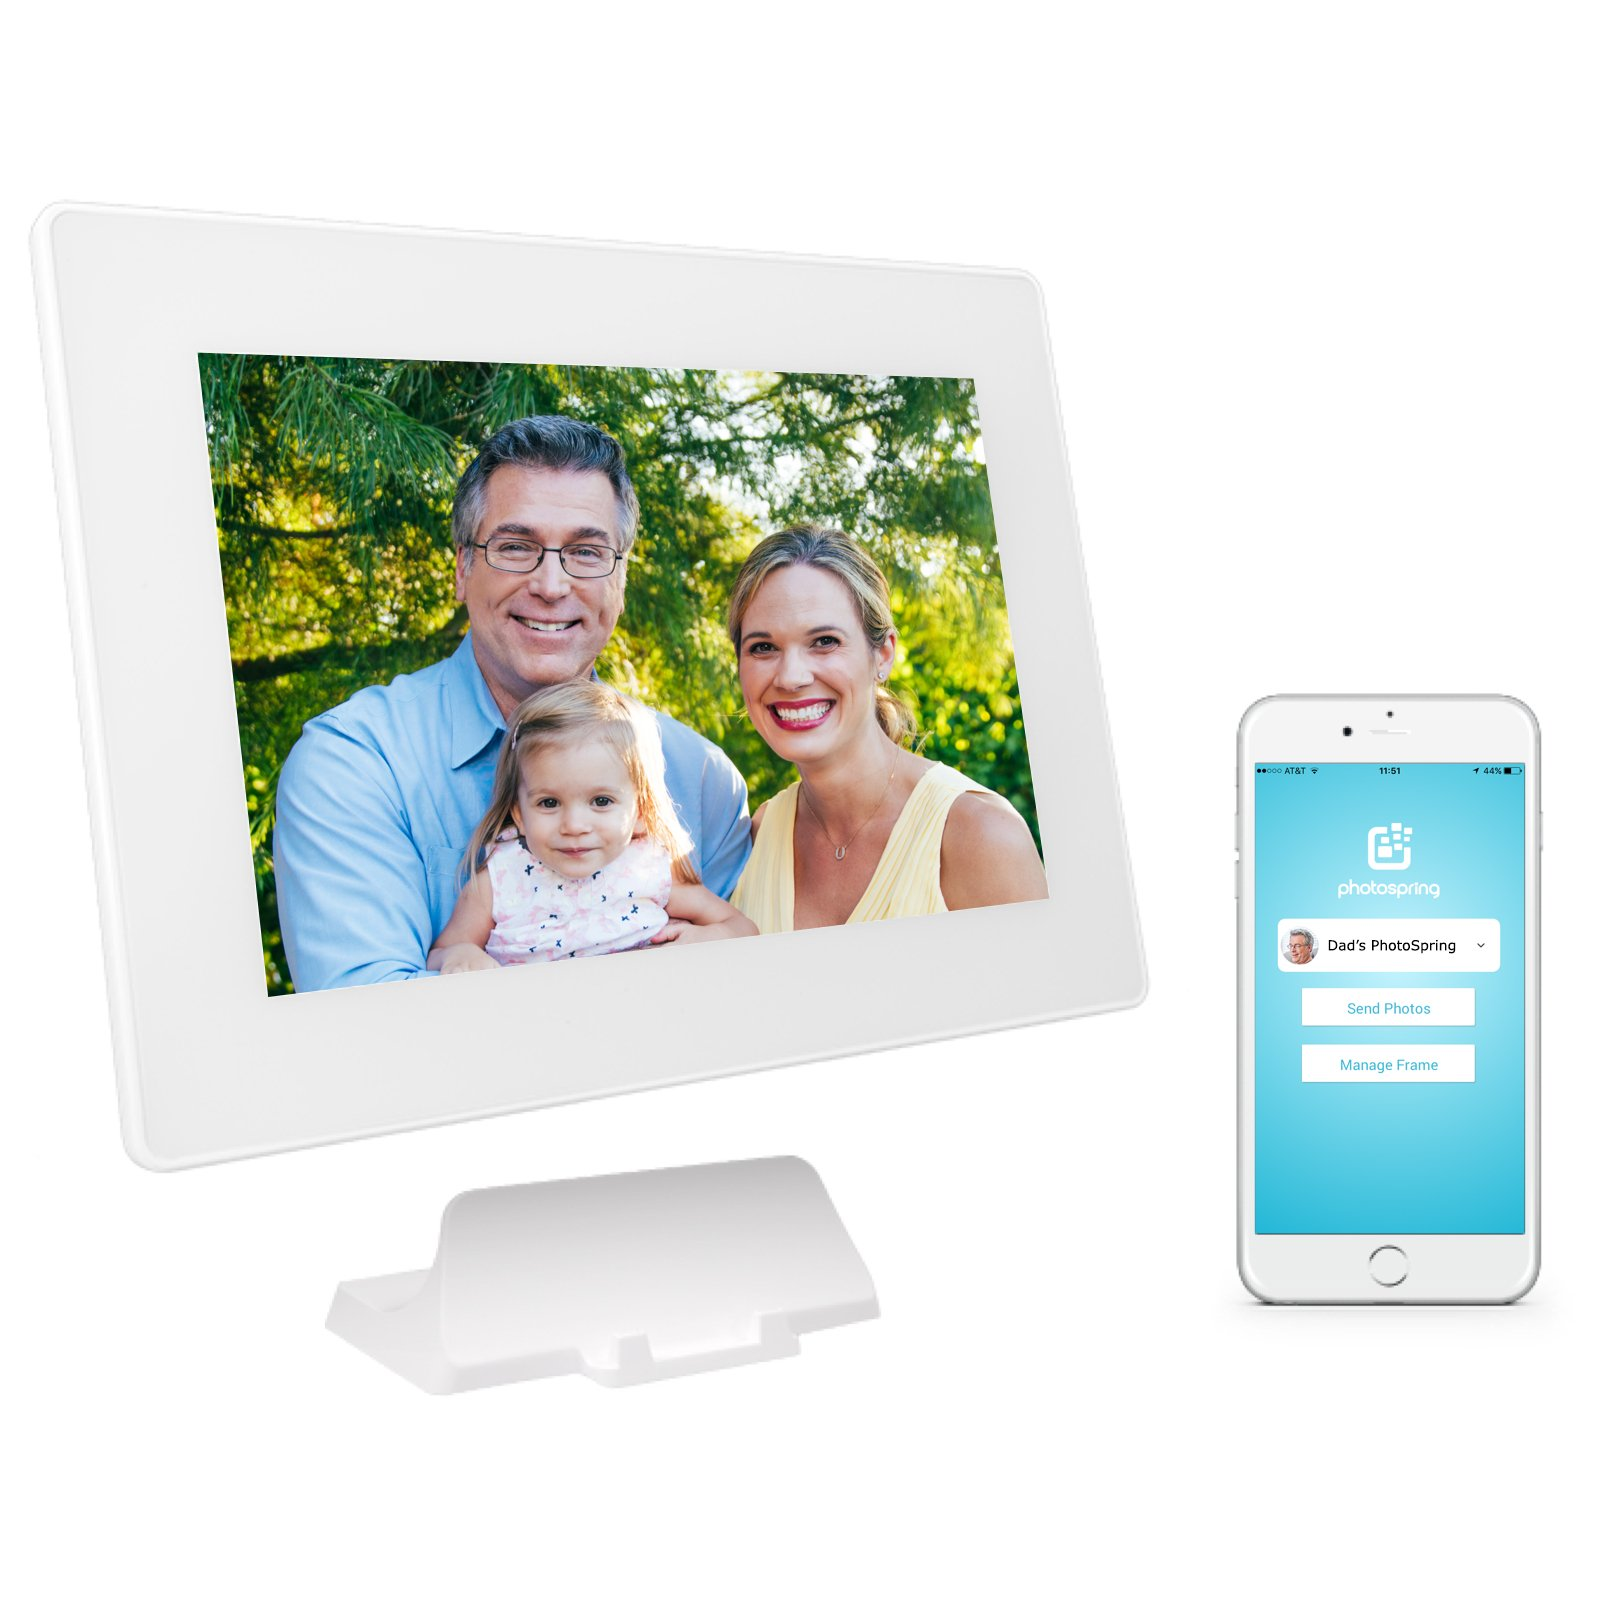 PhotoSpring (64GB) 10-inch WiFi Cloud Digital Picture Frame - Battery, Touch-Screen, Plays Video and Photo Slideshows, HD IPS Display, iPhone & Android app (White - 65,000 Photos)